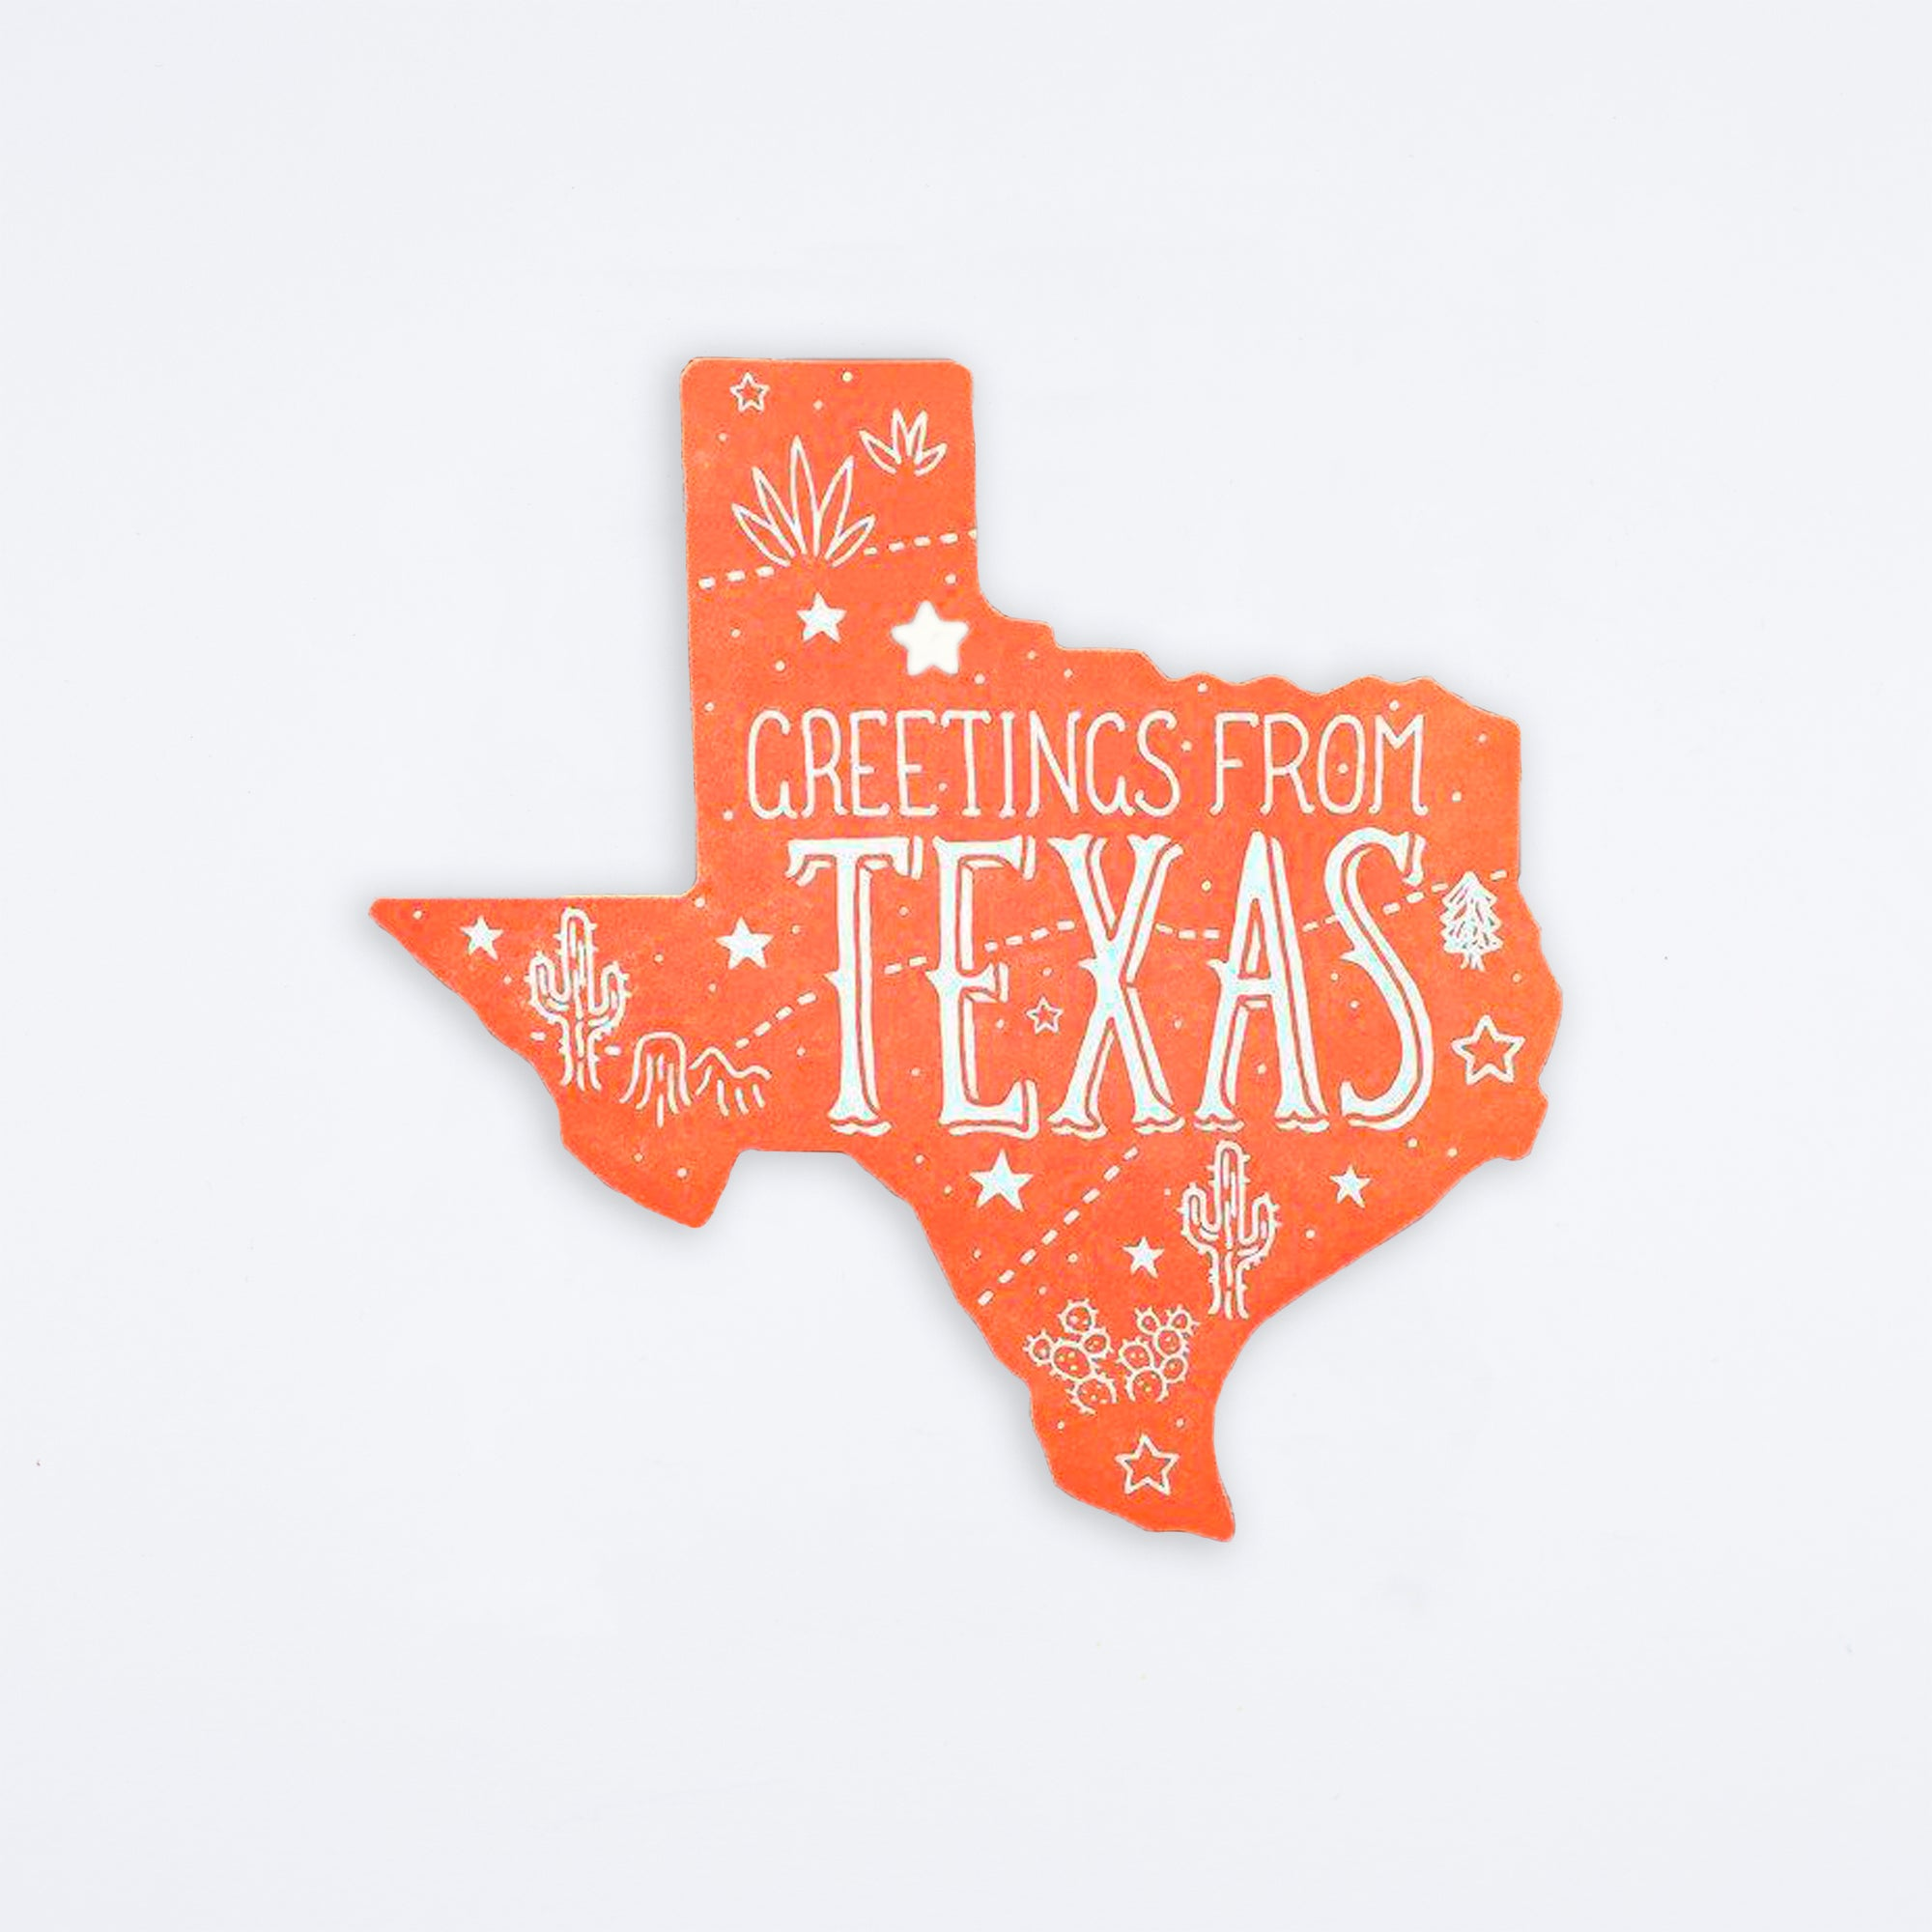 Greetings from Texas Die Cut Postcard